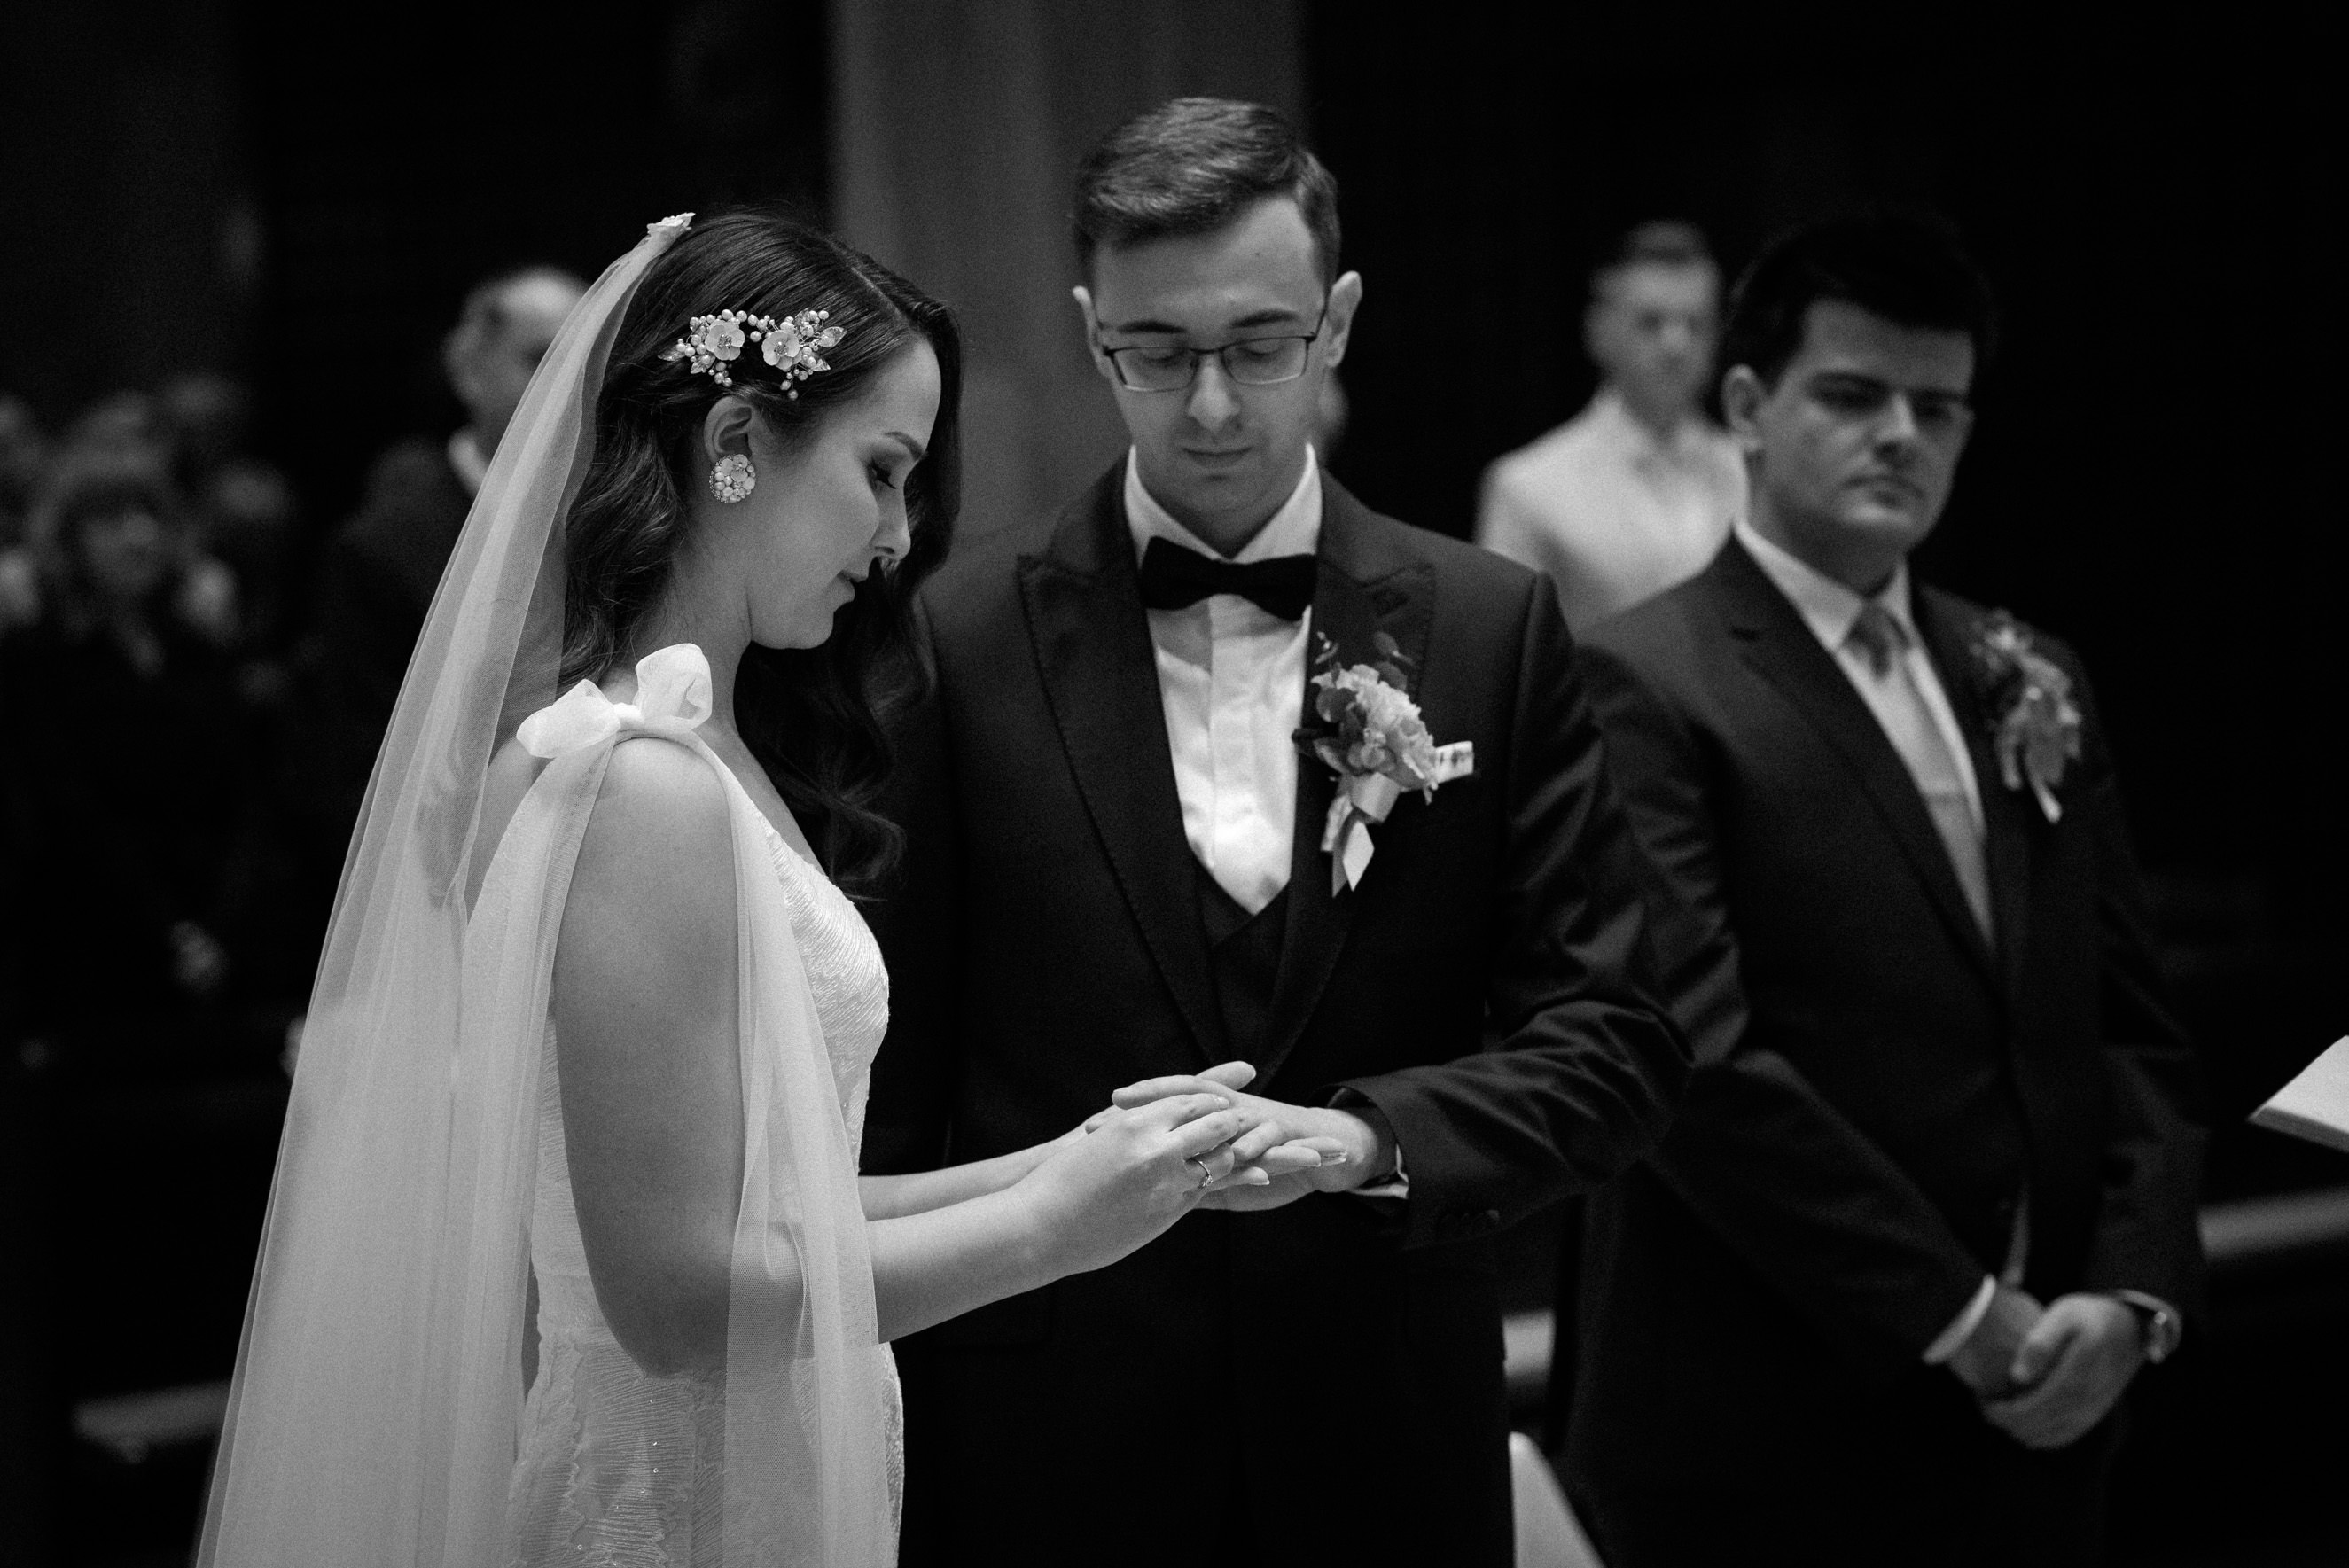 Bride putting wedding ring on groom